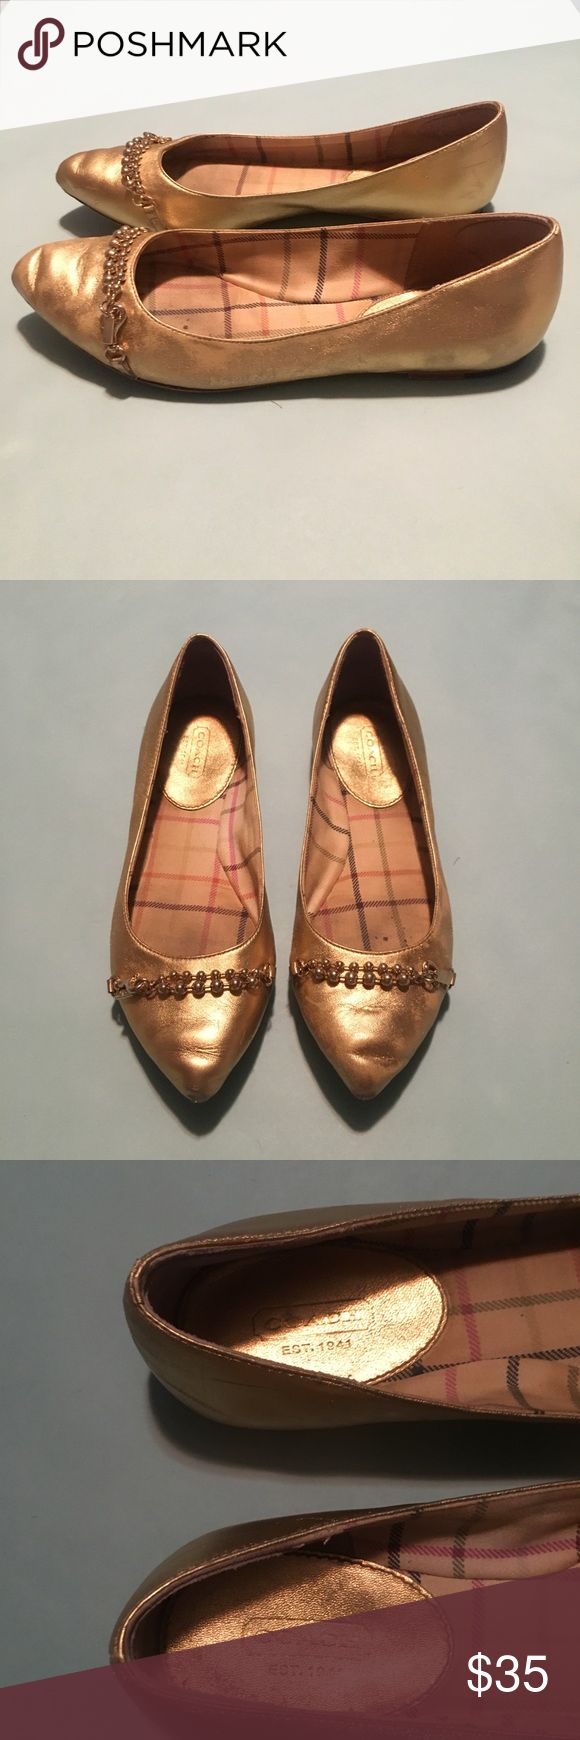 Gold coach flats with chain Gold coach flats with tiny chain around the toes. Size 7. A little worn but still has life left! $35 obo Coach Shoes Flats & Loafers